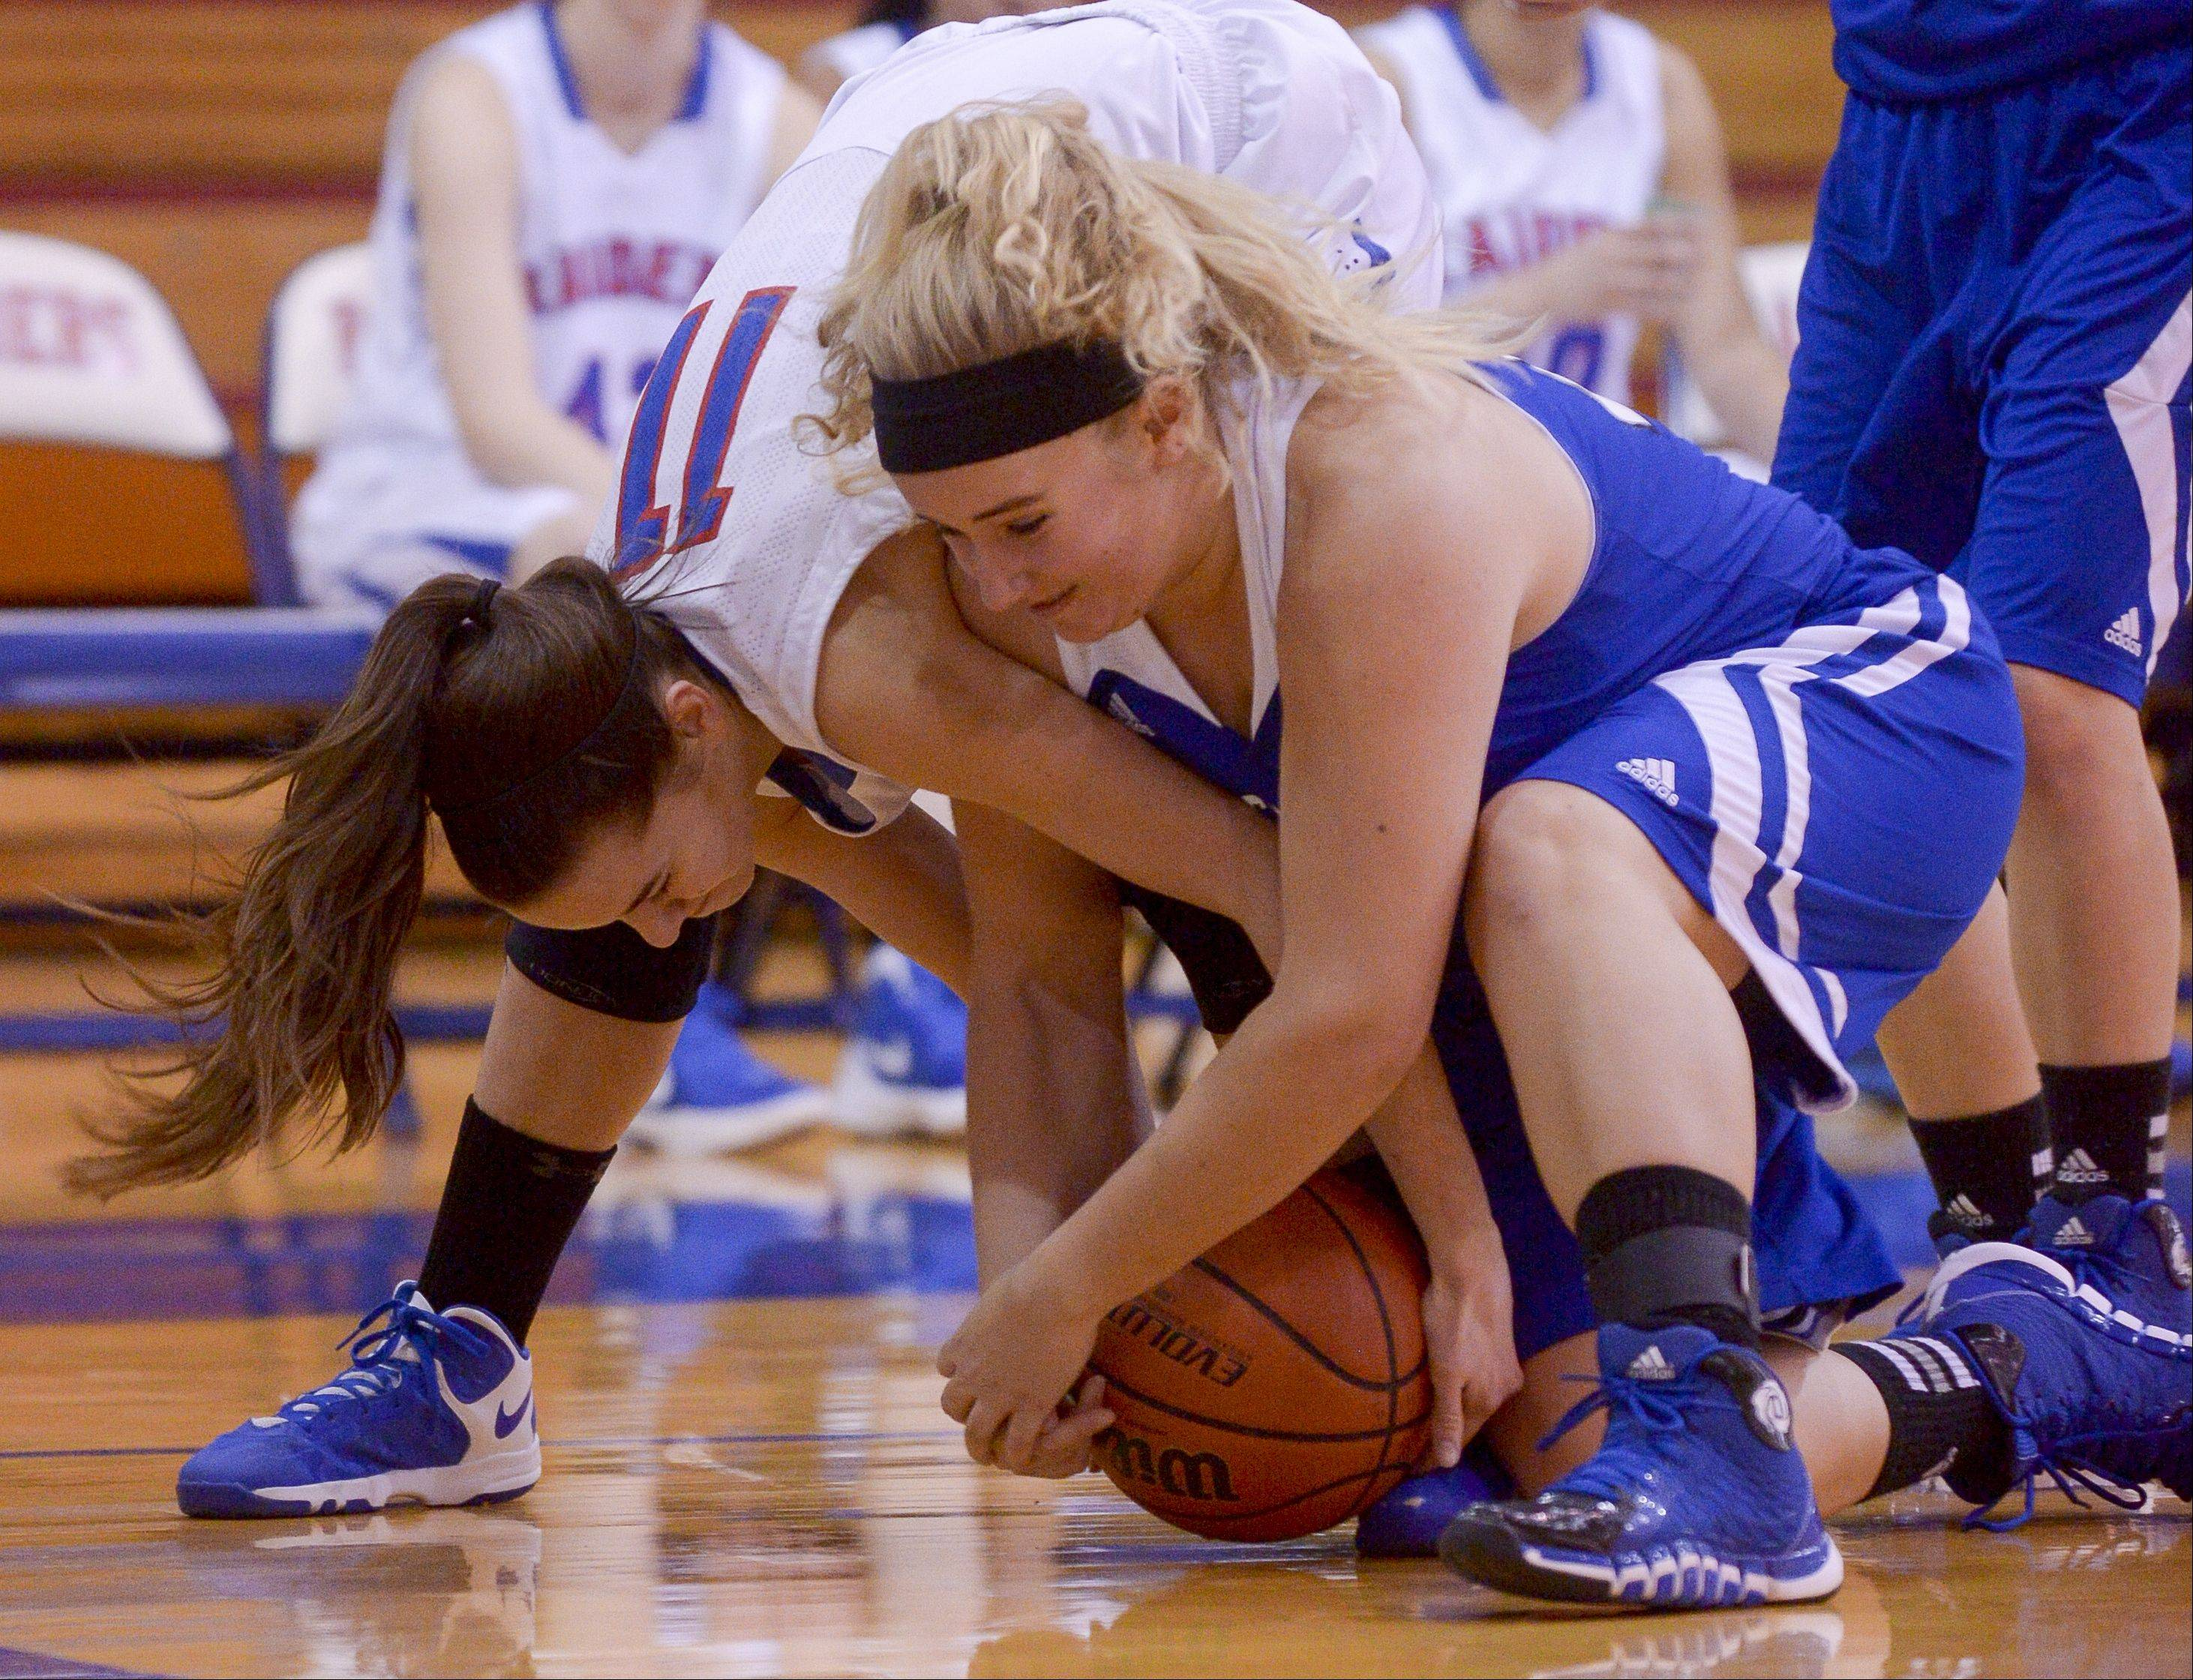 Glenbard South's Jenna Brambora and St. Francis's Danielle Ament struggle for control of the ball.